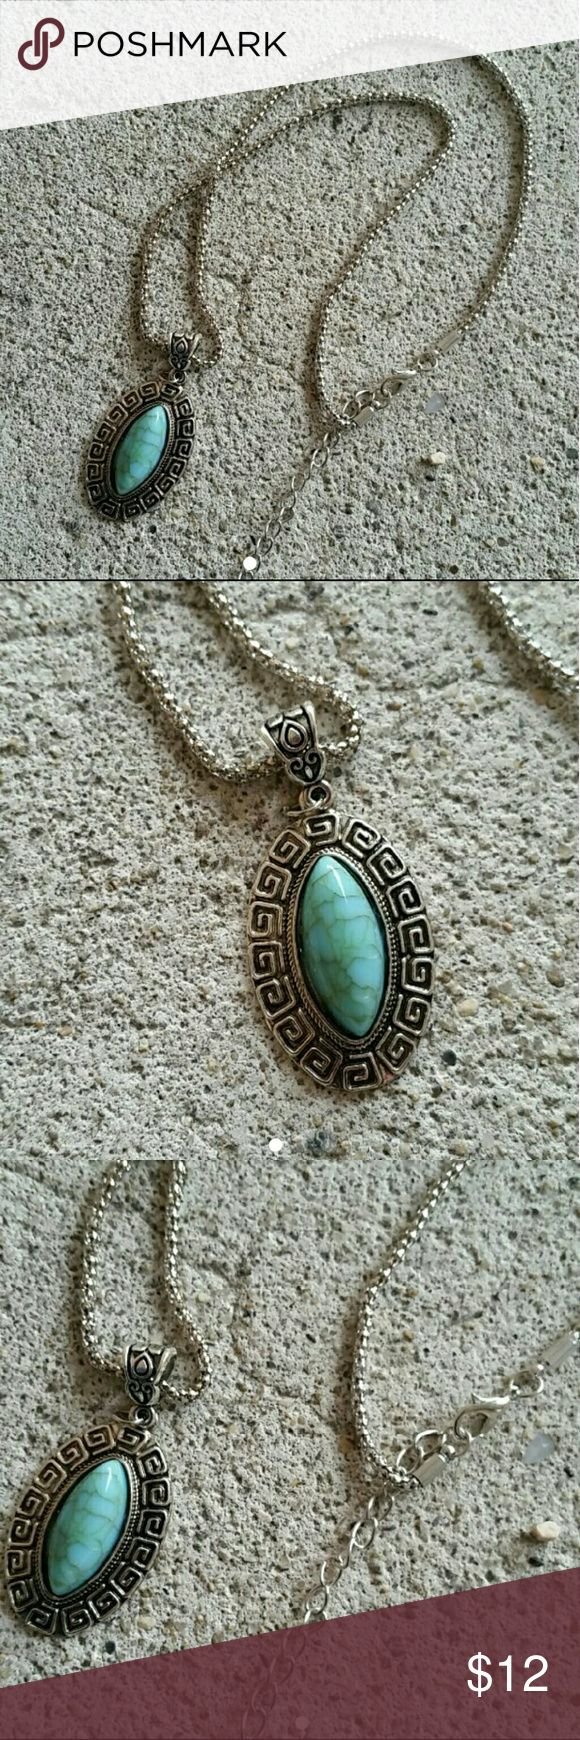 Chunky aztek turquoise necklace *nice turquoise stone pendant with a very lightweight silver tone setting  *funky Aztec design *adjustable clasp  *hollow silver tone chain  *Stone is manmade  No free shipping, I am open to offers  Bundle to save on shipping   Fashion, trendy, festival, boho, bohemian, Hippie, grunge, hipster, casual, native American, aztek, mayan, southwestern, necklace, choker, focal, chunky, jewelry, forever 21, f21, hot topic, Abercrombie, aeropostale, Hollister, h&m…